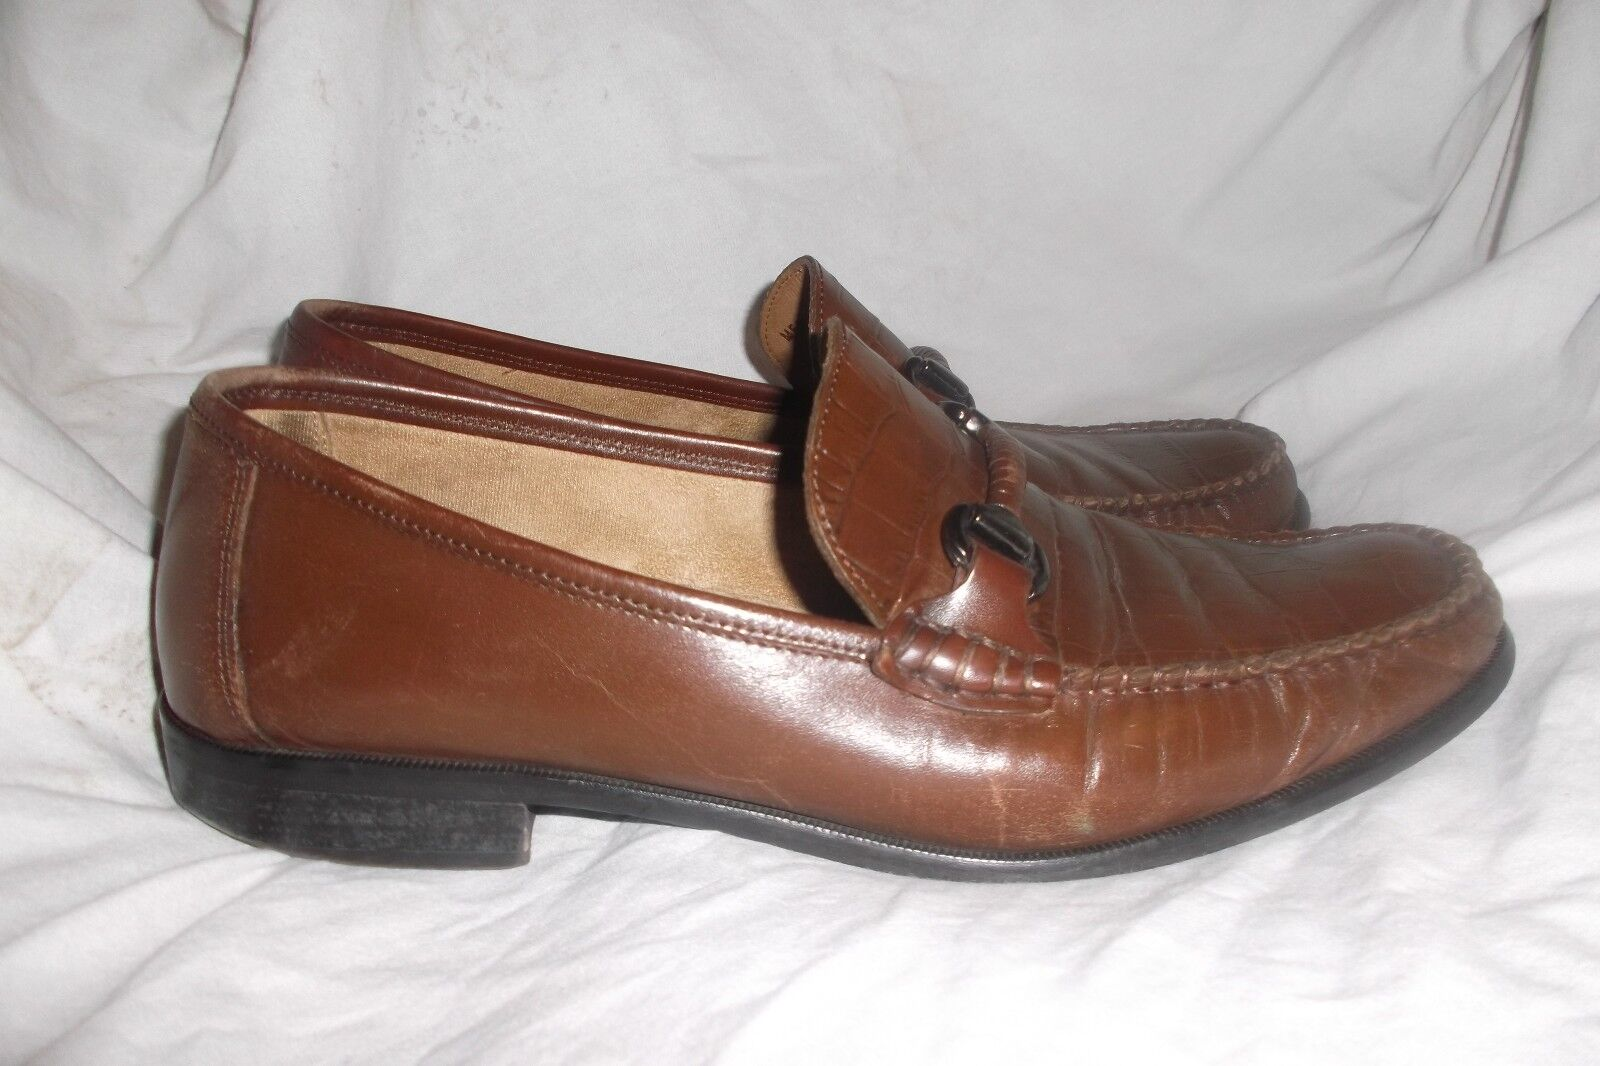 FLORSHEIM SARASOTA MENS MOC-TOE BIT LOAFER CROCO PRINT LEATHER SZ 10.5 D zapatos